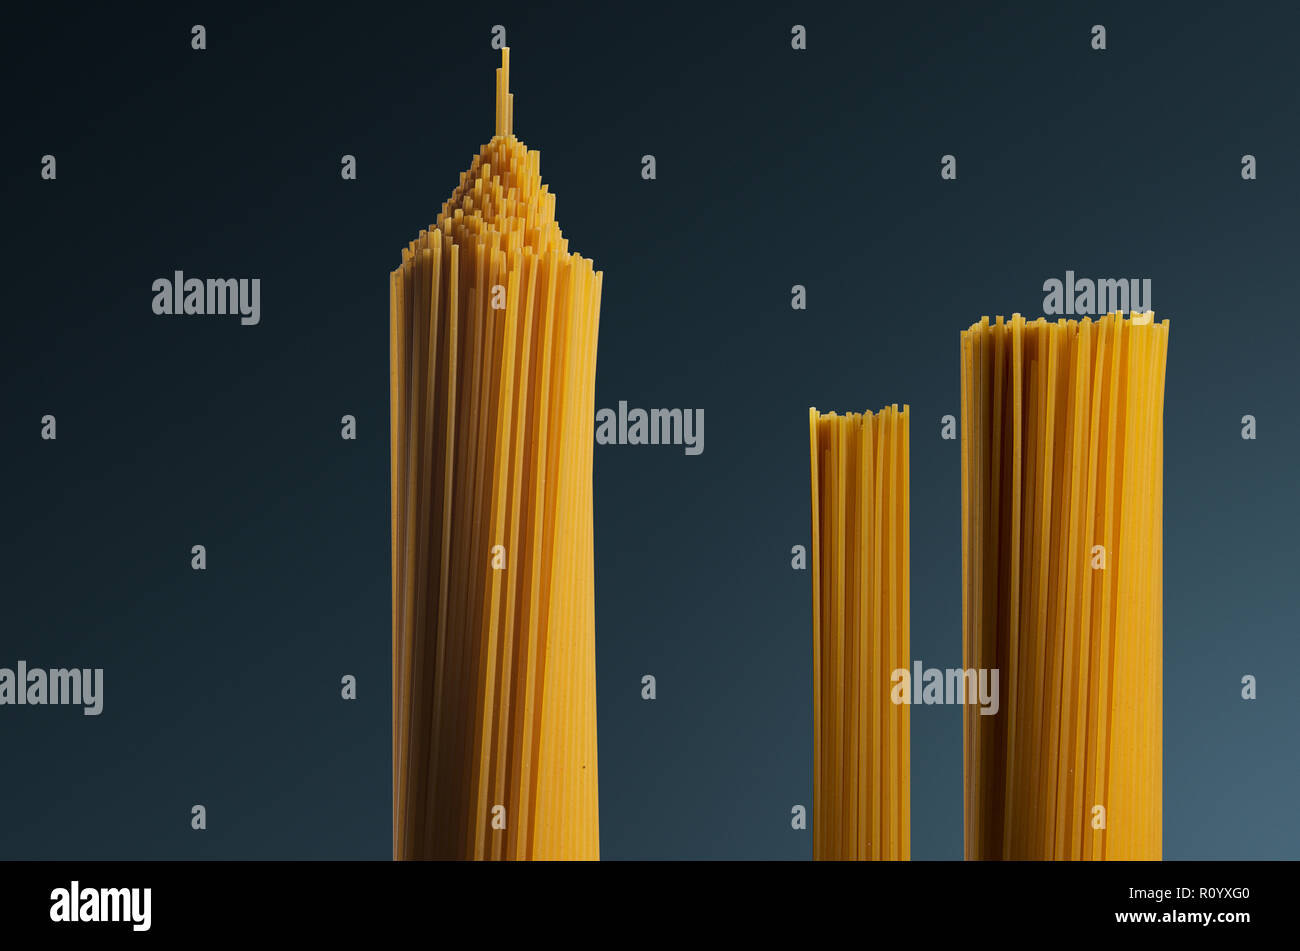 Three bunches of raw uncooked spaghetti shaped as tower structures against grey background - Stock Image